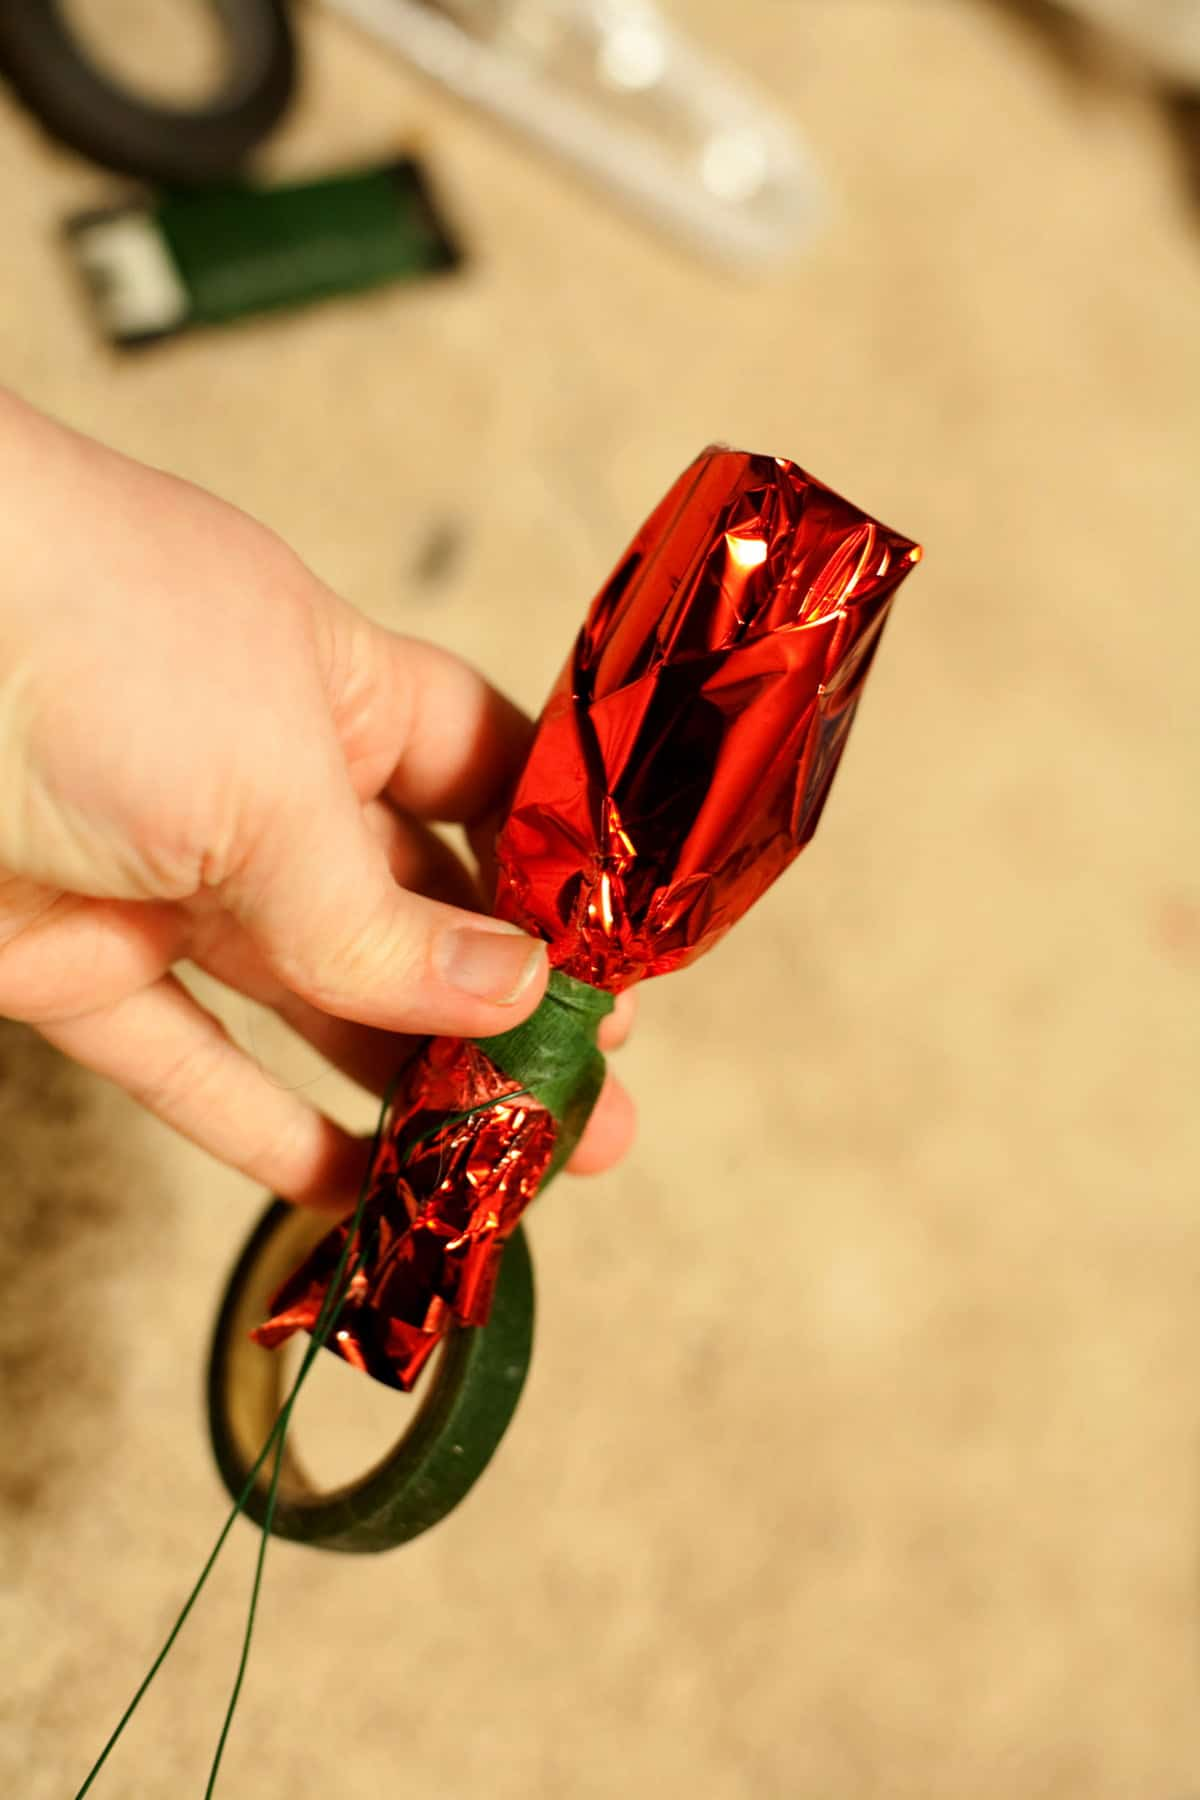 A hand is shown wrapping red mylar tightly around a mini liquor bottle.